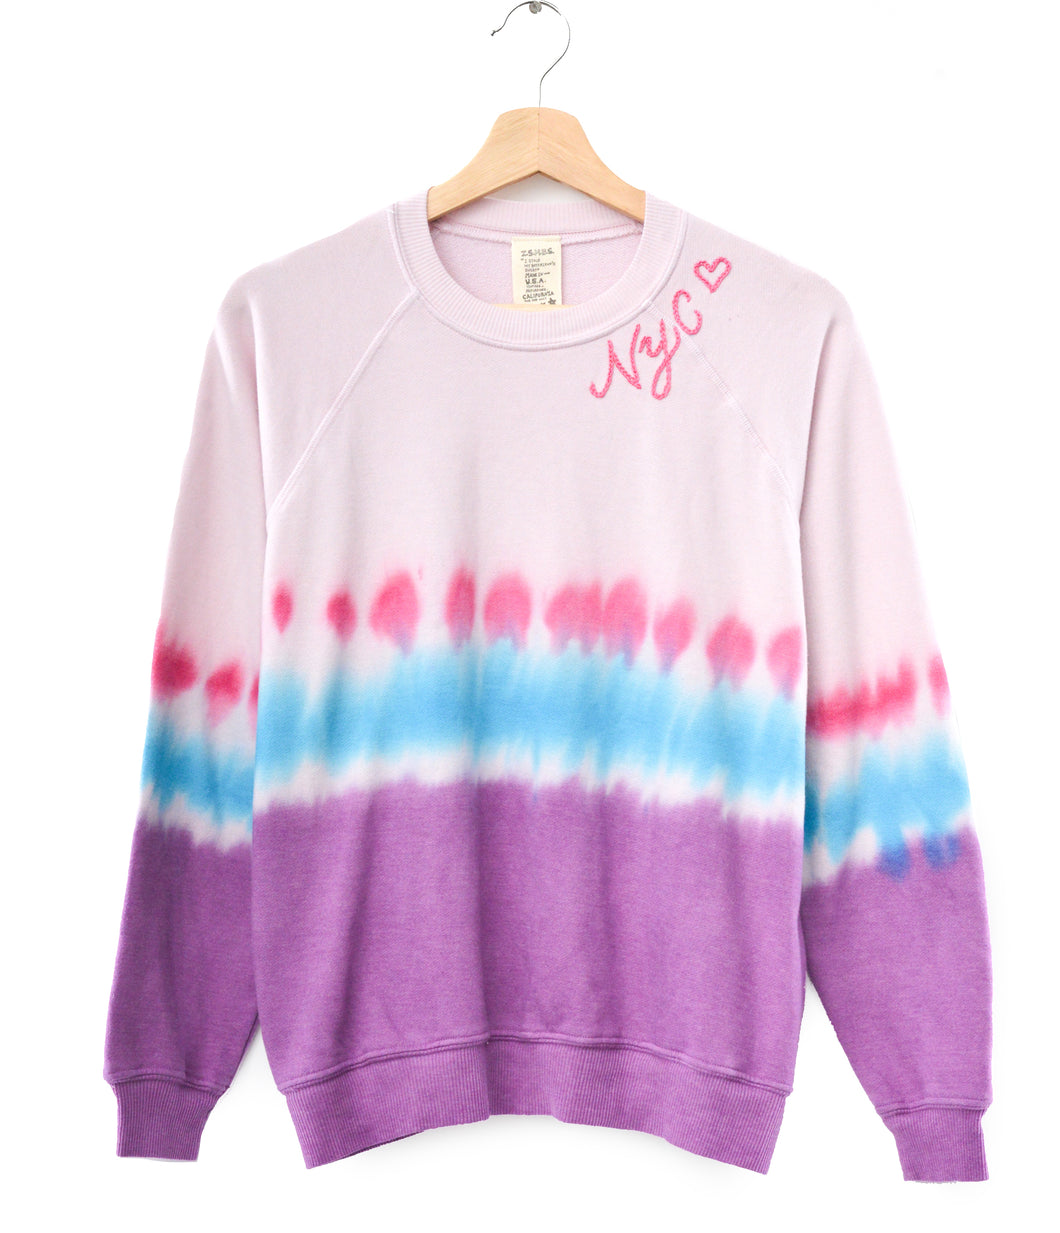 TIE DYE PINK L/S SWEATS WITH CUSTOM HAND EMBROIDERY